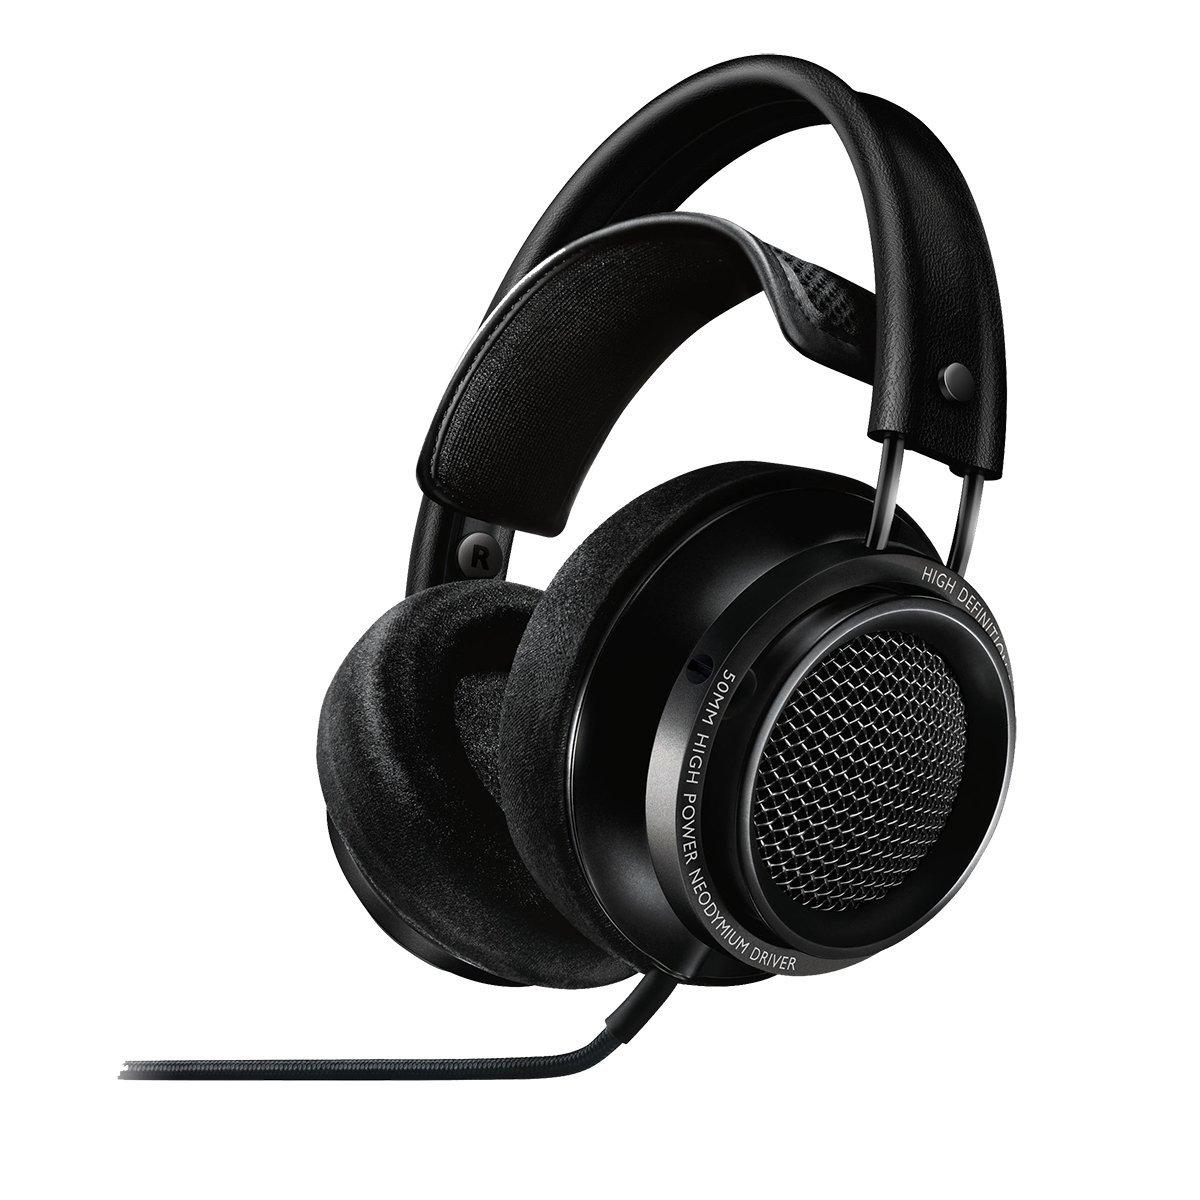 Philips X2/27 Fidelio Premium Headphones